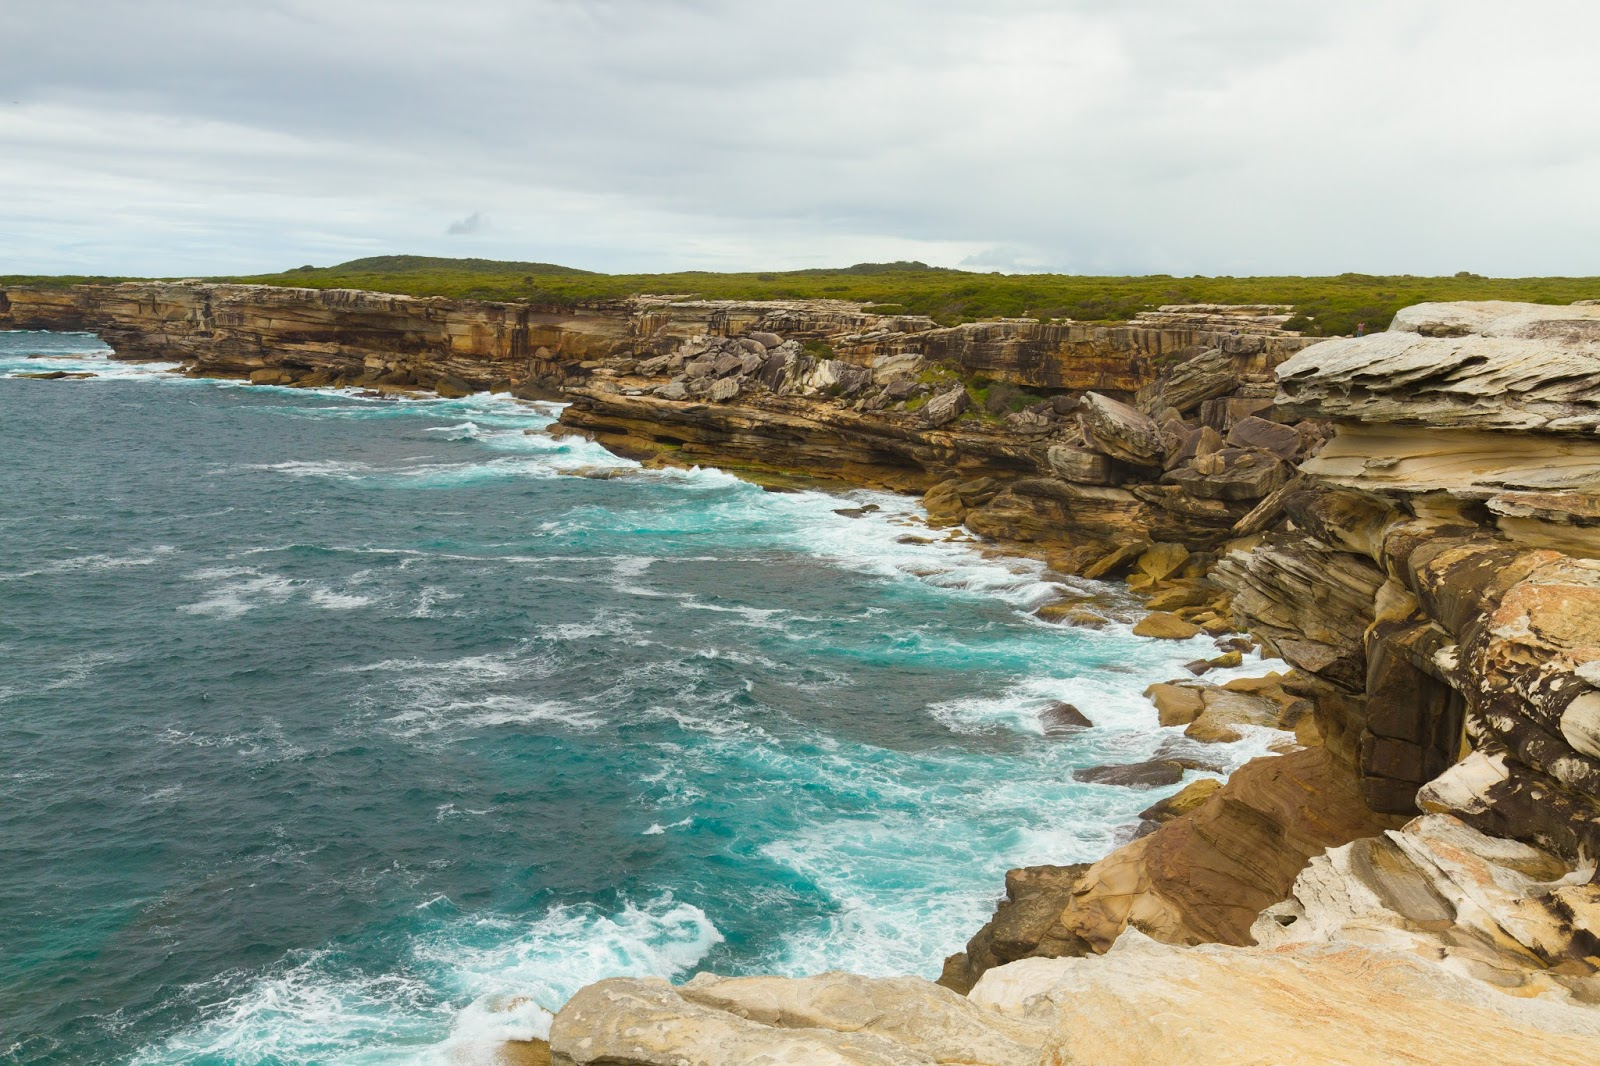 Cliffs of Kurnell in Sydney, Australia